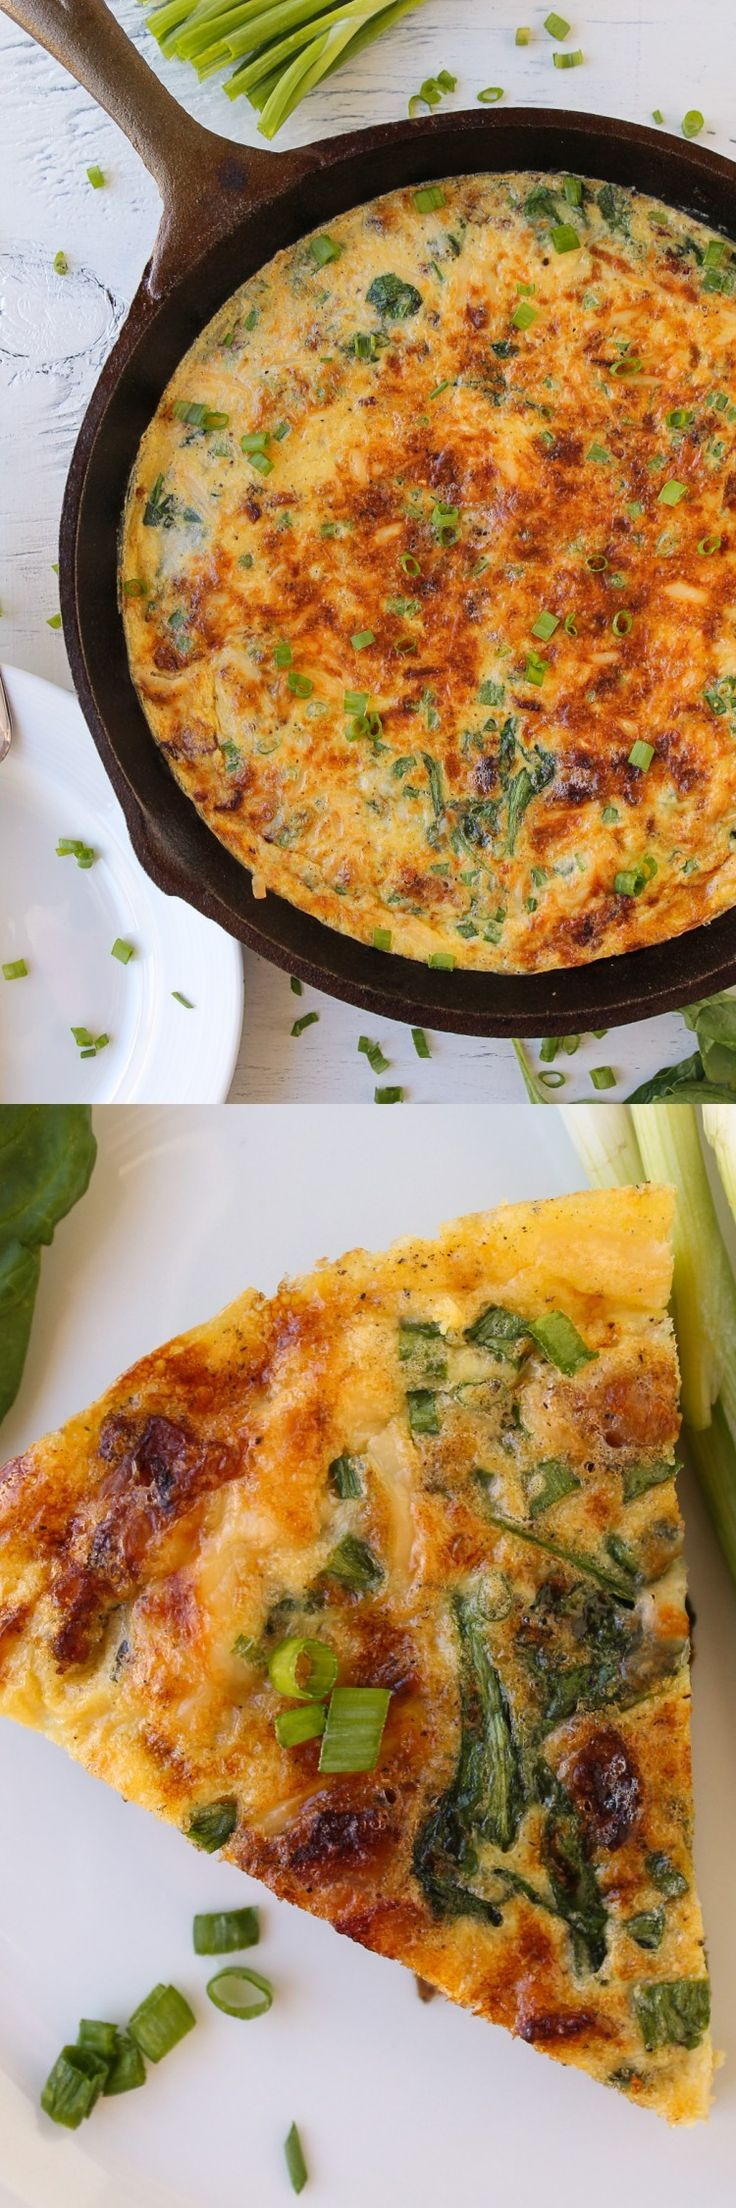 Bacon, Gouda, and Spinach Frittata - The Food Charlatan // This is easy and healthy! And full of bacon.